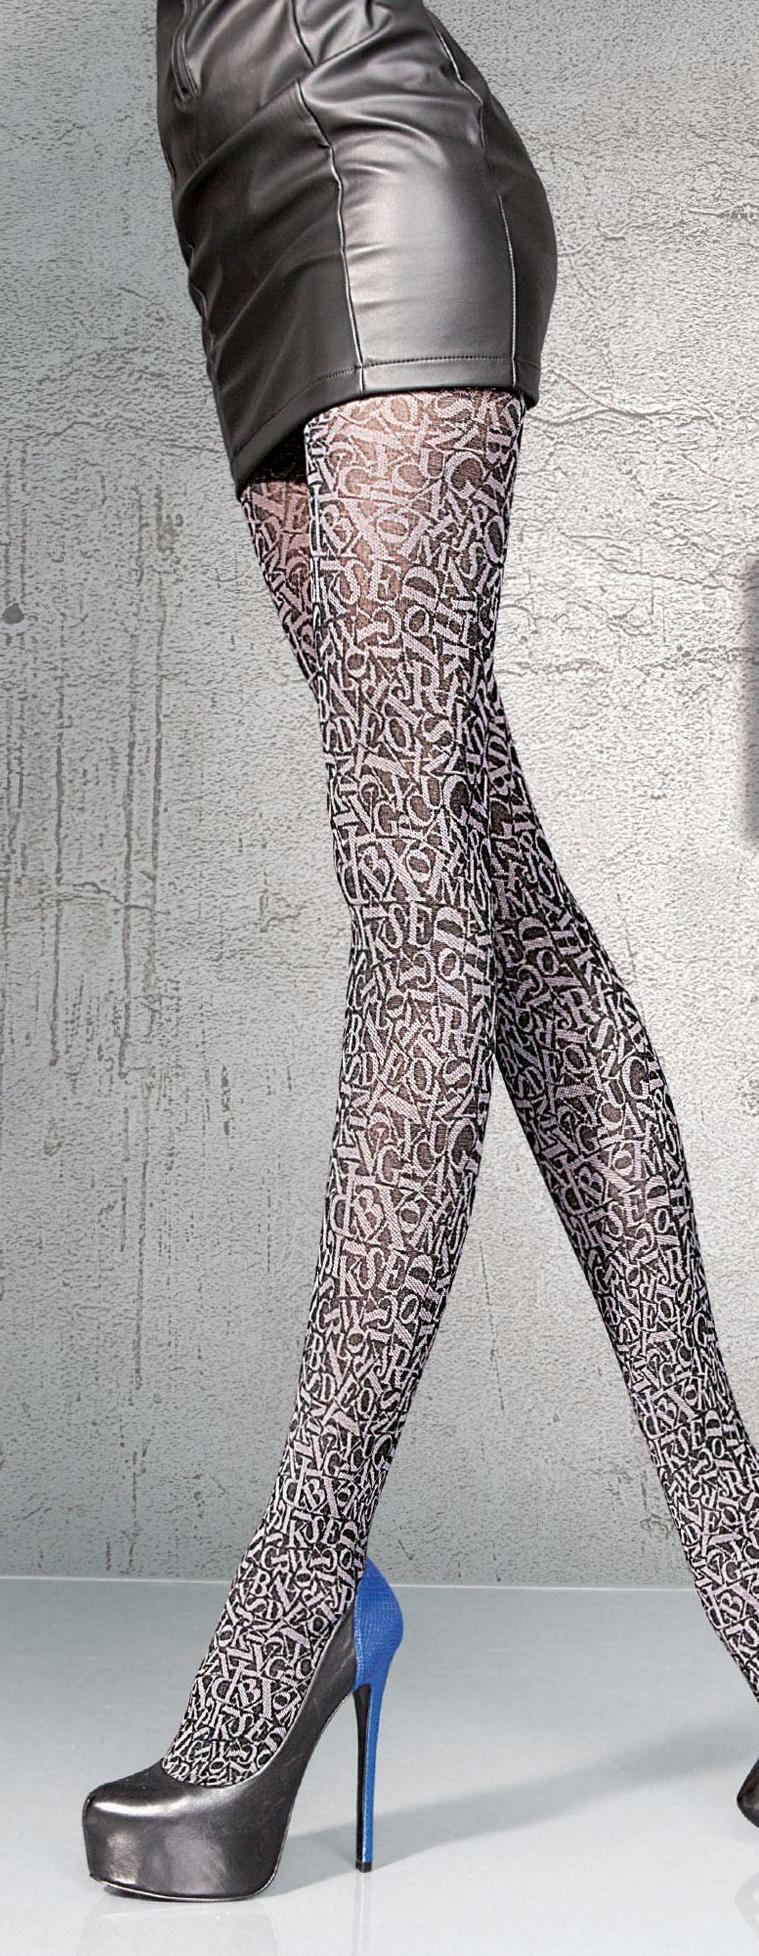 Fiore: Stiletto Thighs Patterned Tights FIO_Danisa